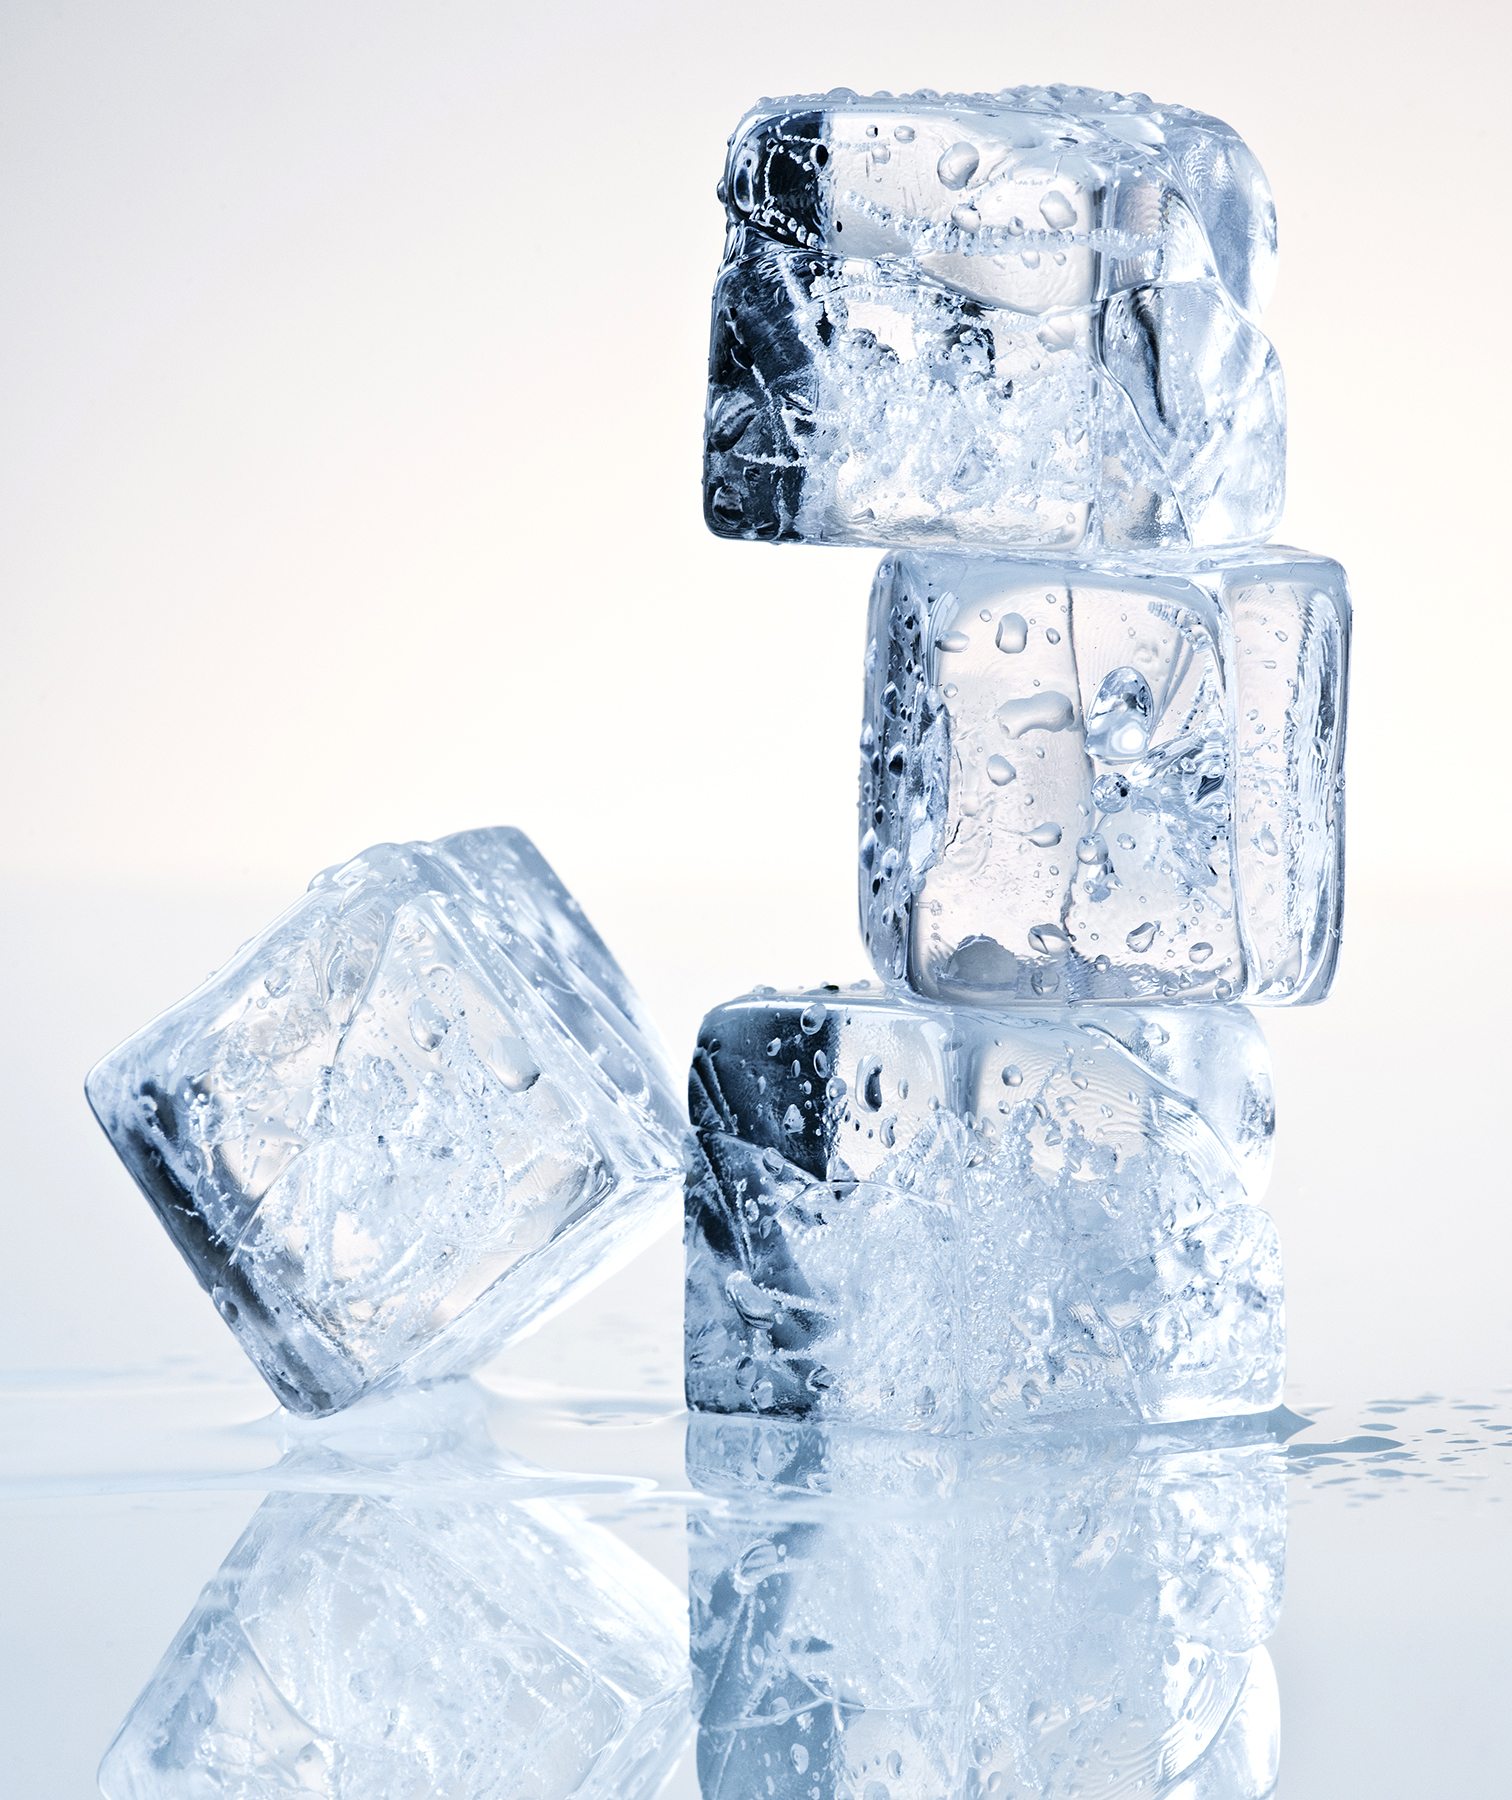 stacked-ice-cubes